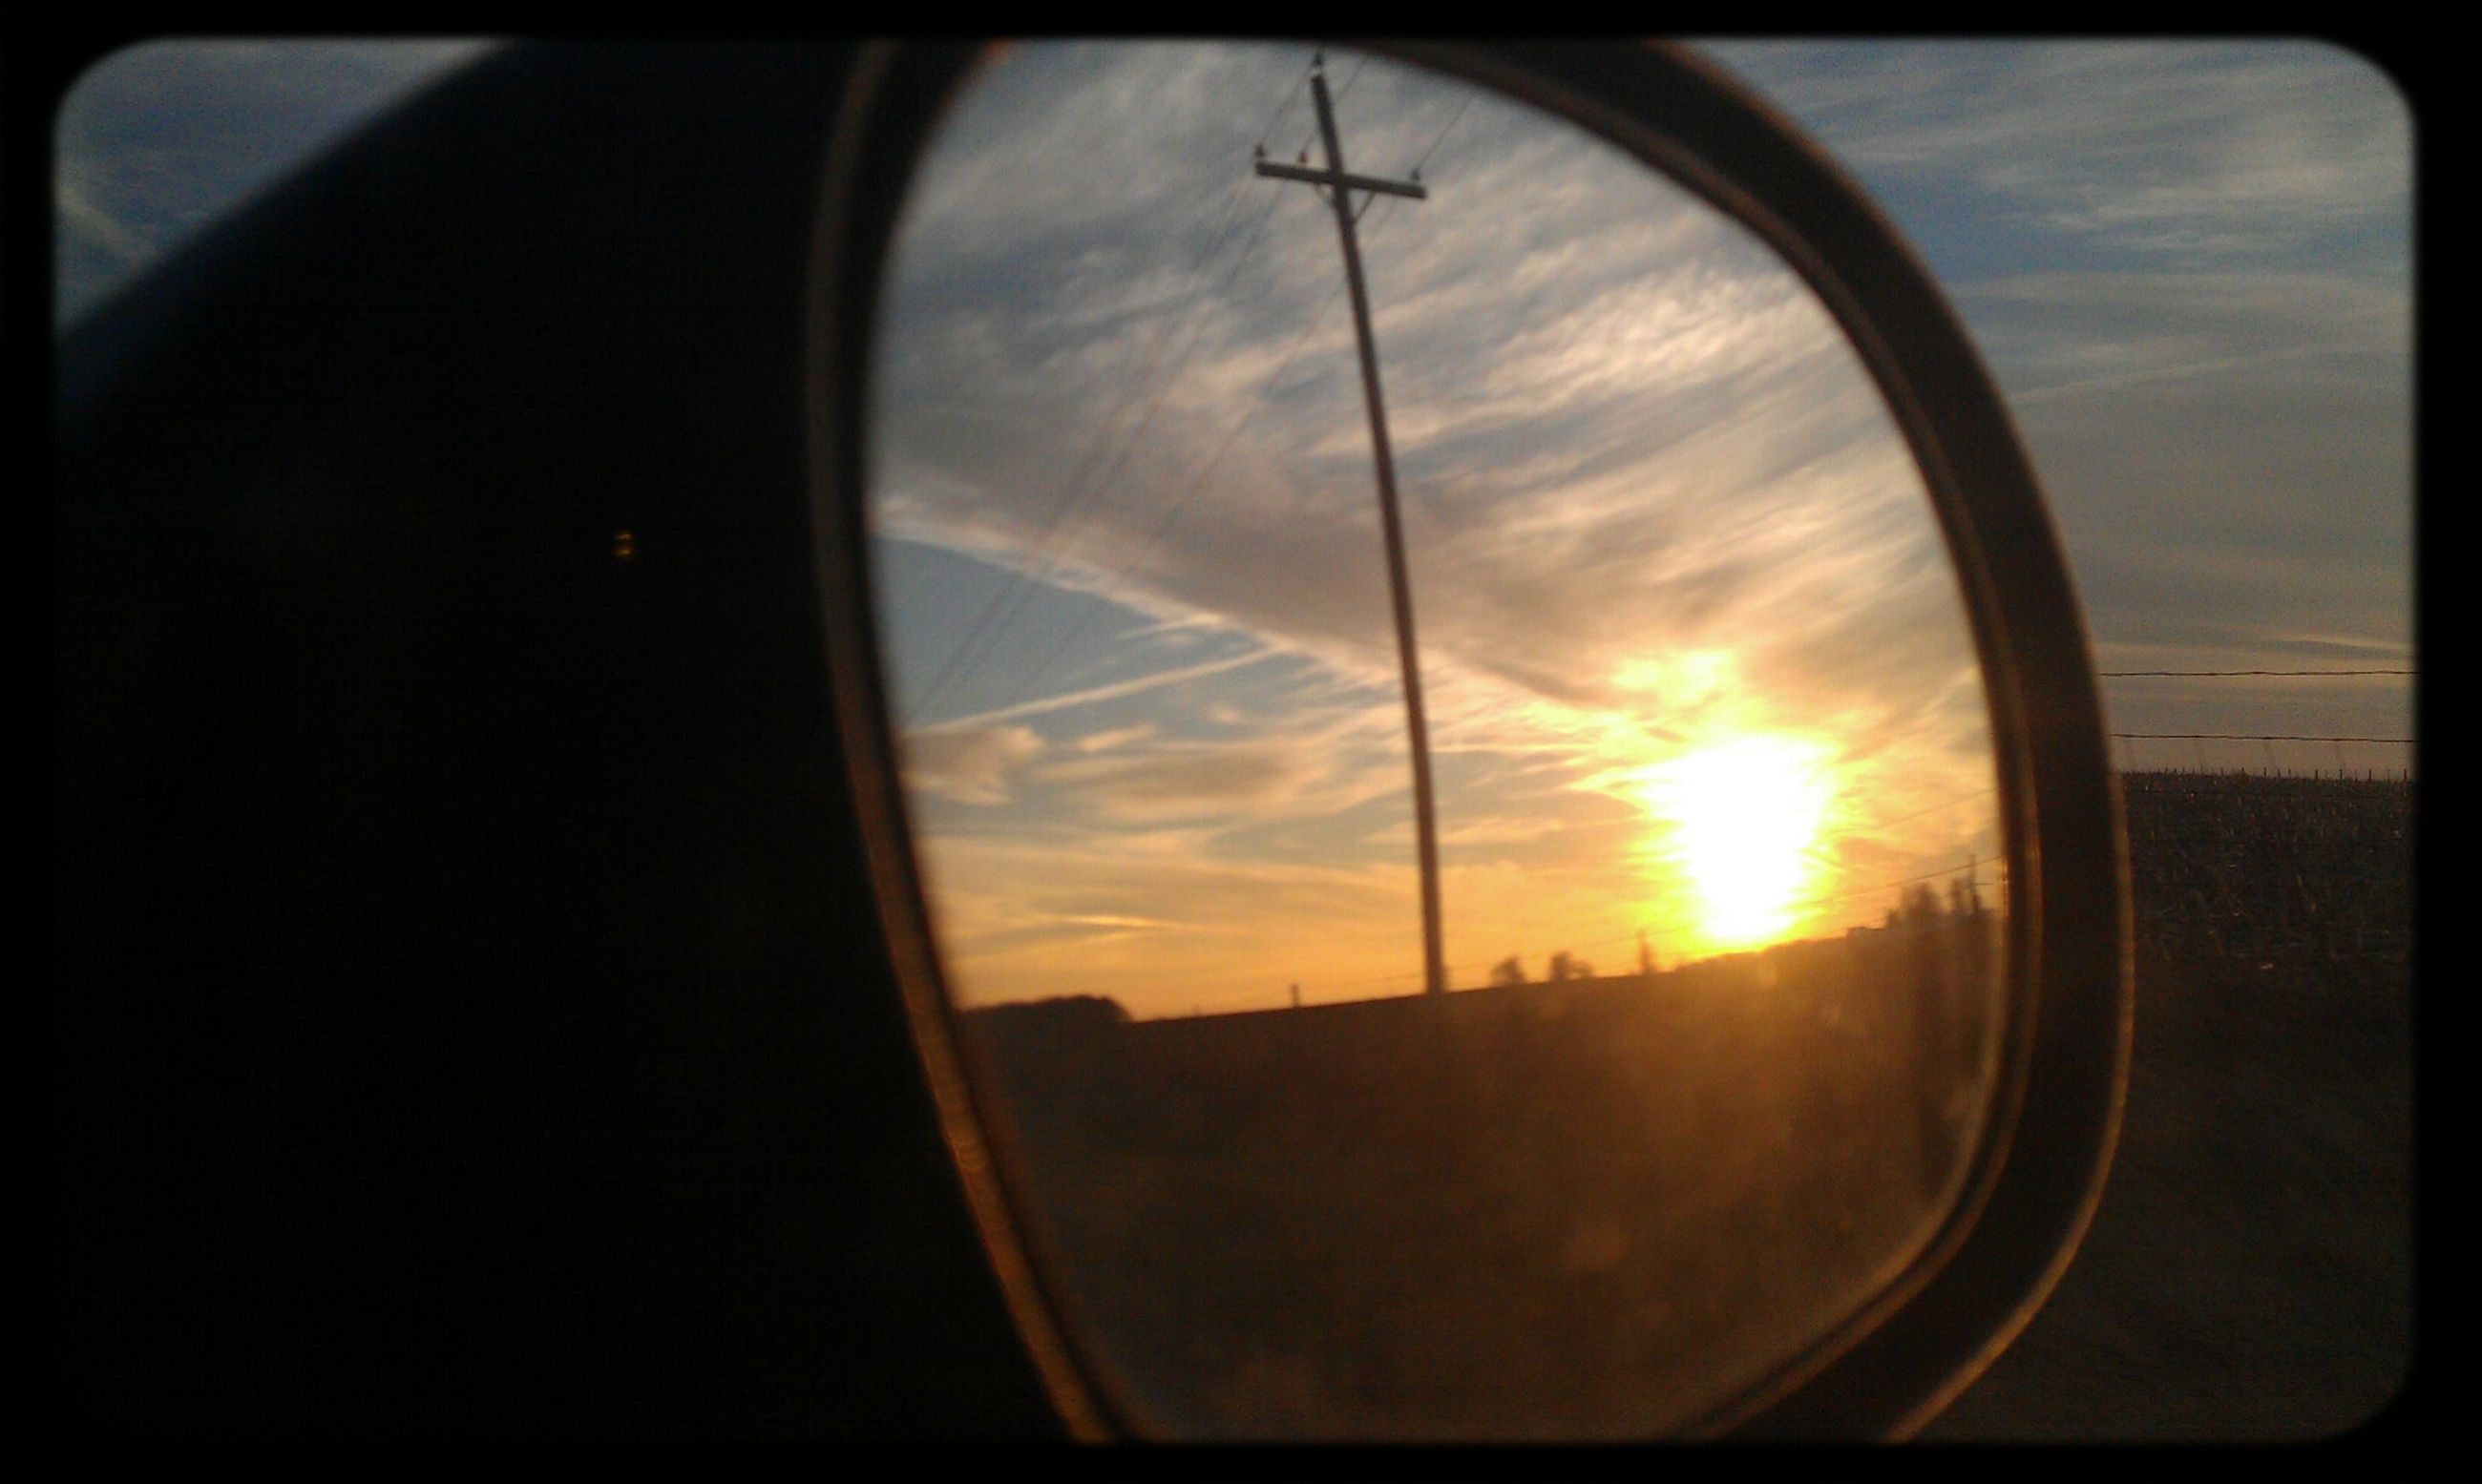 sunset, transportation, sun, sky, mode of transport, silhouette, orange color, vehicle interior, land vehicle, cloud - sky, car, glass - material, sunlight, reflection, transparent, window, side-view mirror, transfer print, travel, cloud